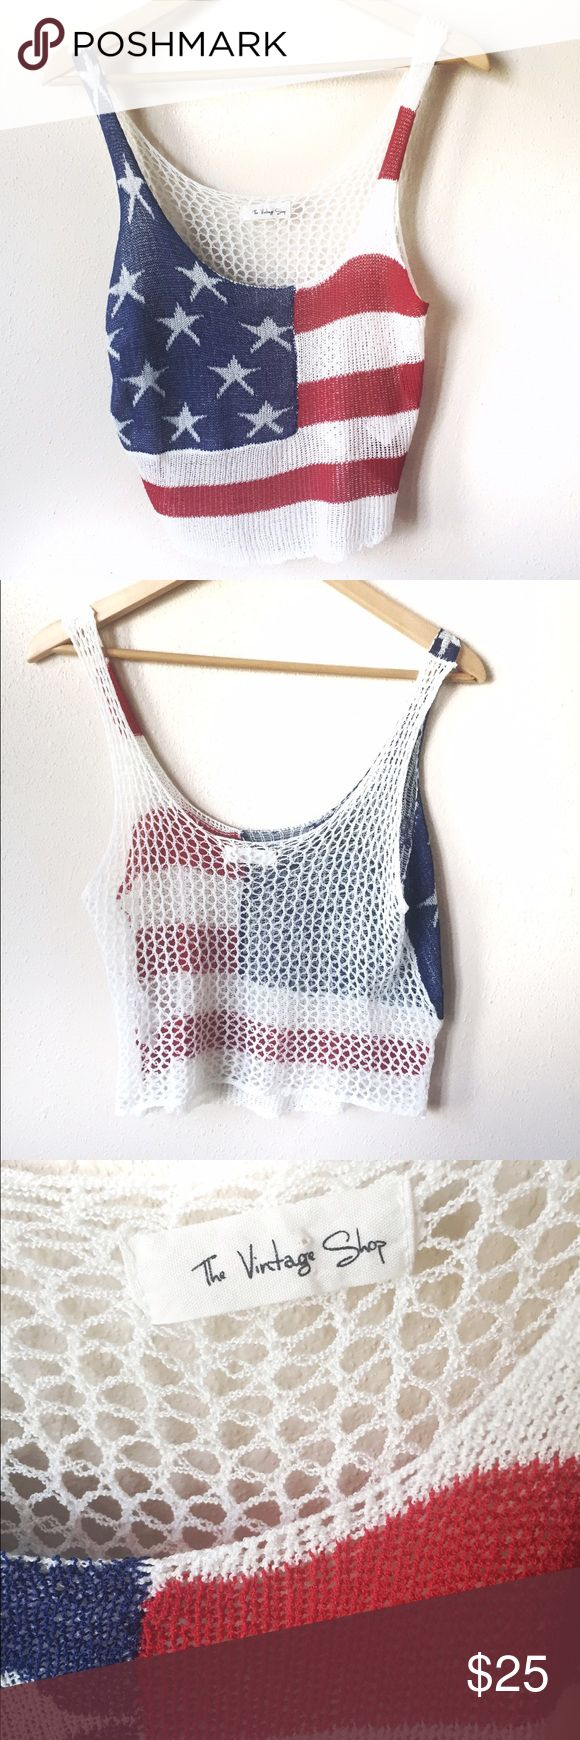 American Flag crop top open crochet / net back Show your style this season with this crochet / net back crop style top. Complete the look with Converse, cut offs & mirrored sunglasses. Size medium. NWOT Tops Crop Tops